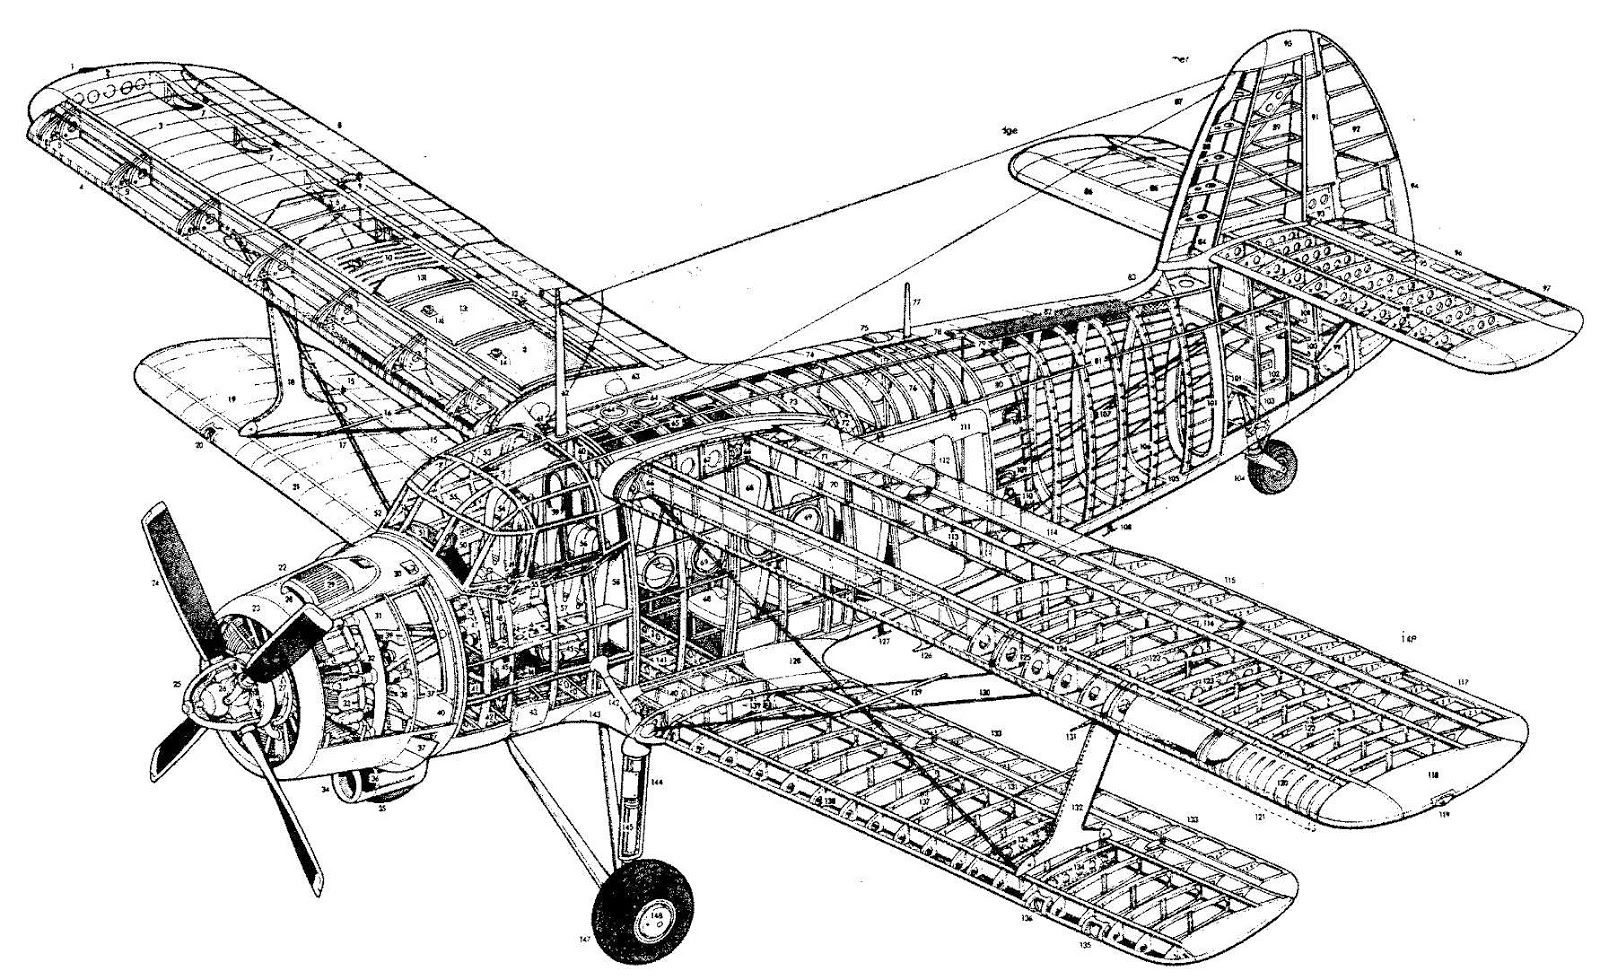 Who Has More Clear Picture Of An-2 Cutaway Drawing